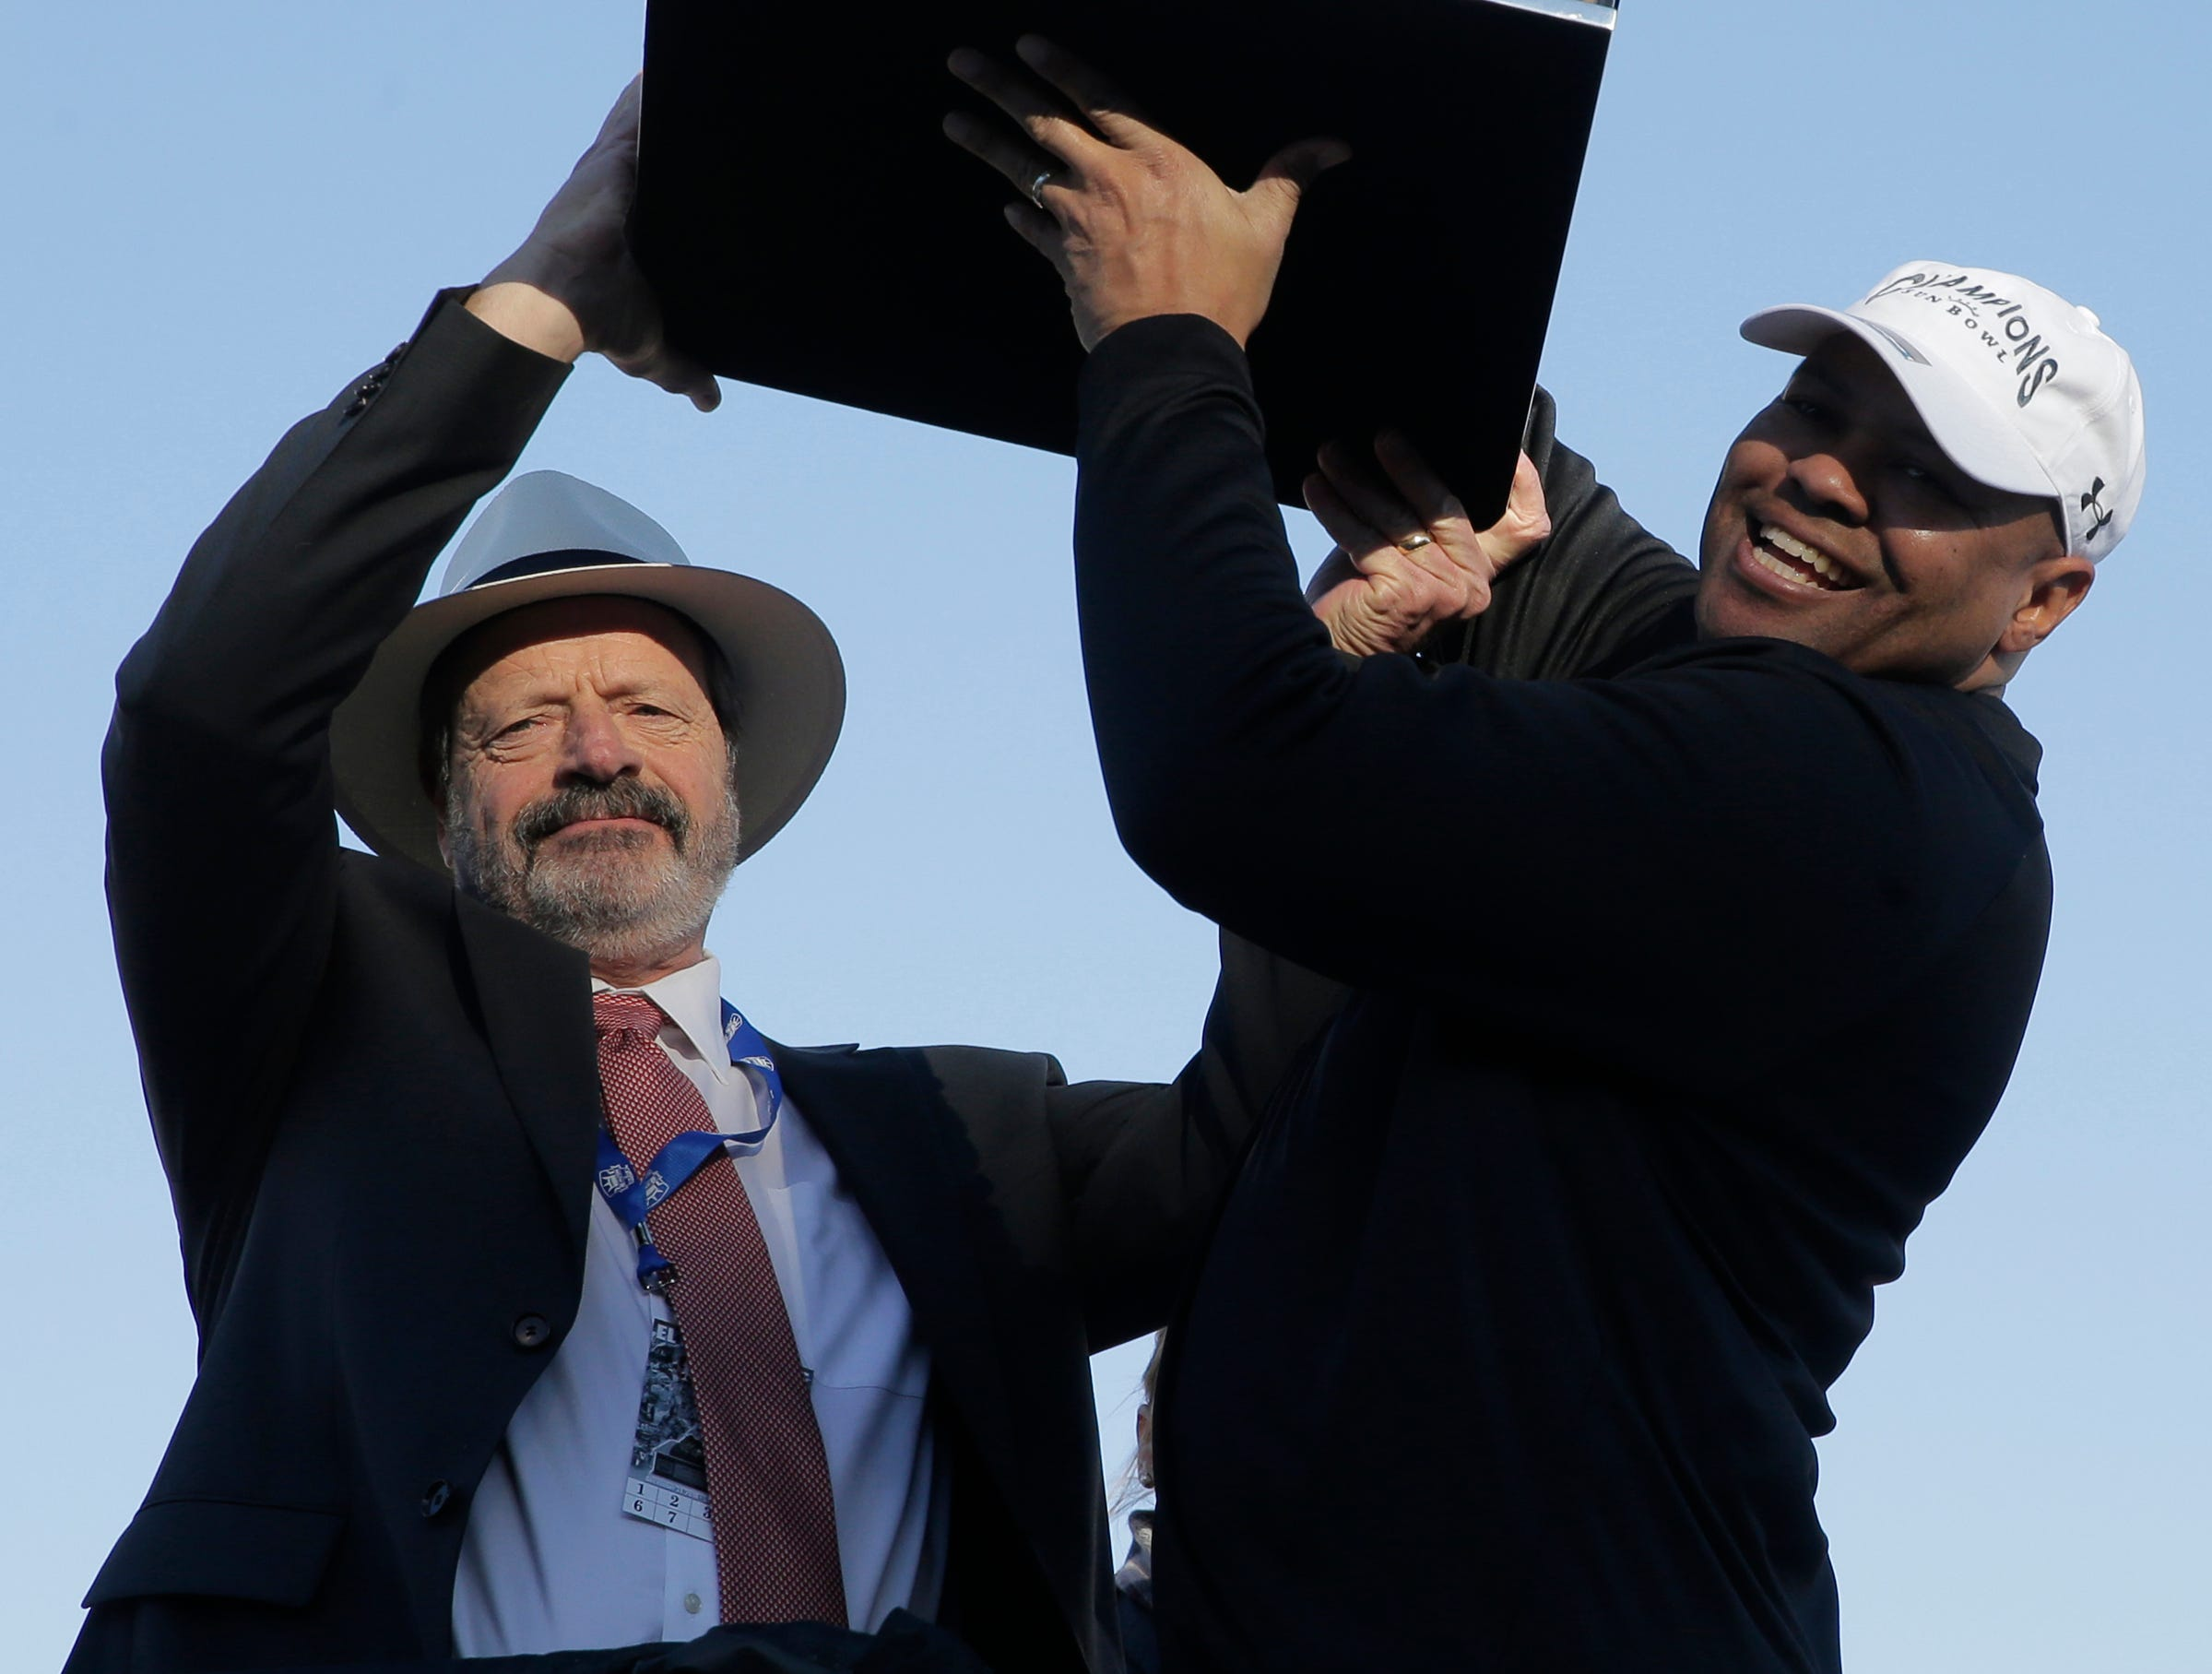 Former El Paso Mayor Oscar Leeser holds up the Hyundai Sun Bowl Championship trophy with Stanford head coach David Shaw after his Cradinal teamd defeated Pitt 14-13 to win the 85th Hyundai Sun Bowl.